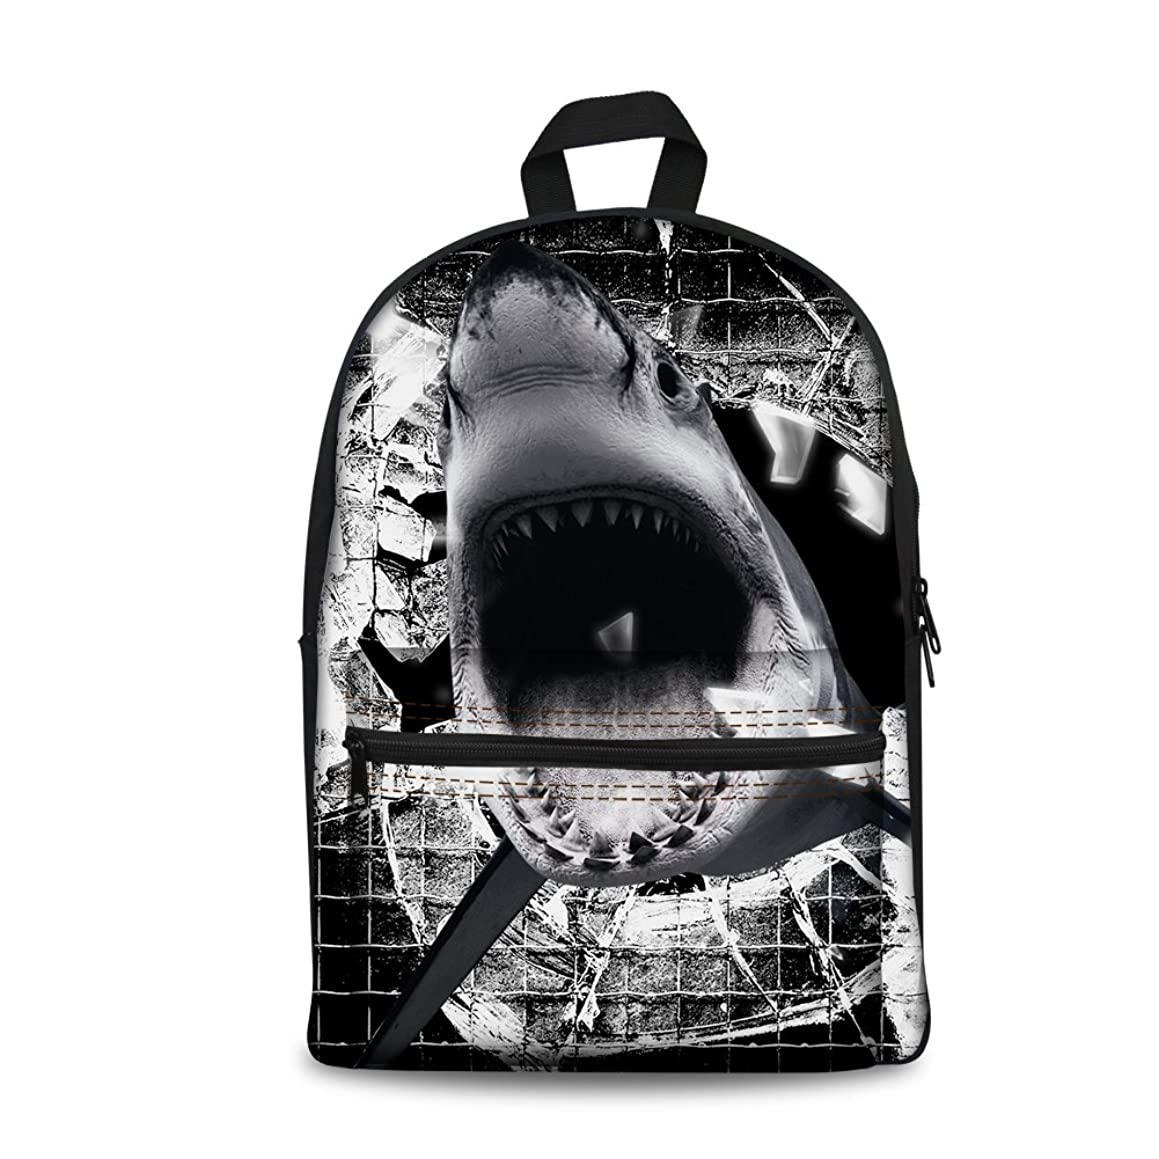 Bigcardesigns Canvas Shark Bookbag Backpack Schoolbag Boys Girls